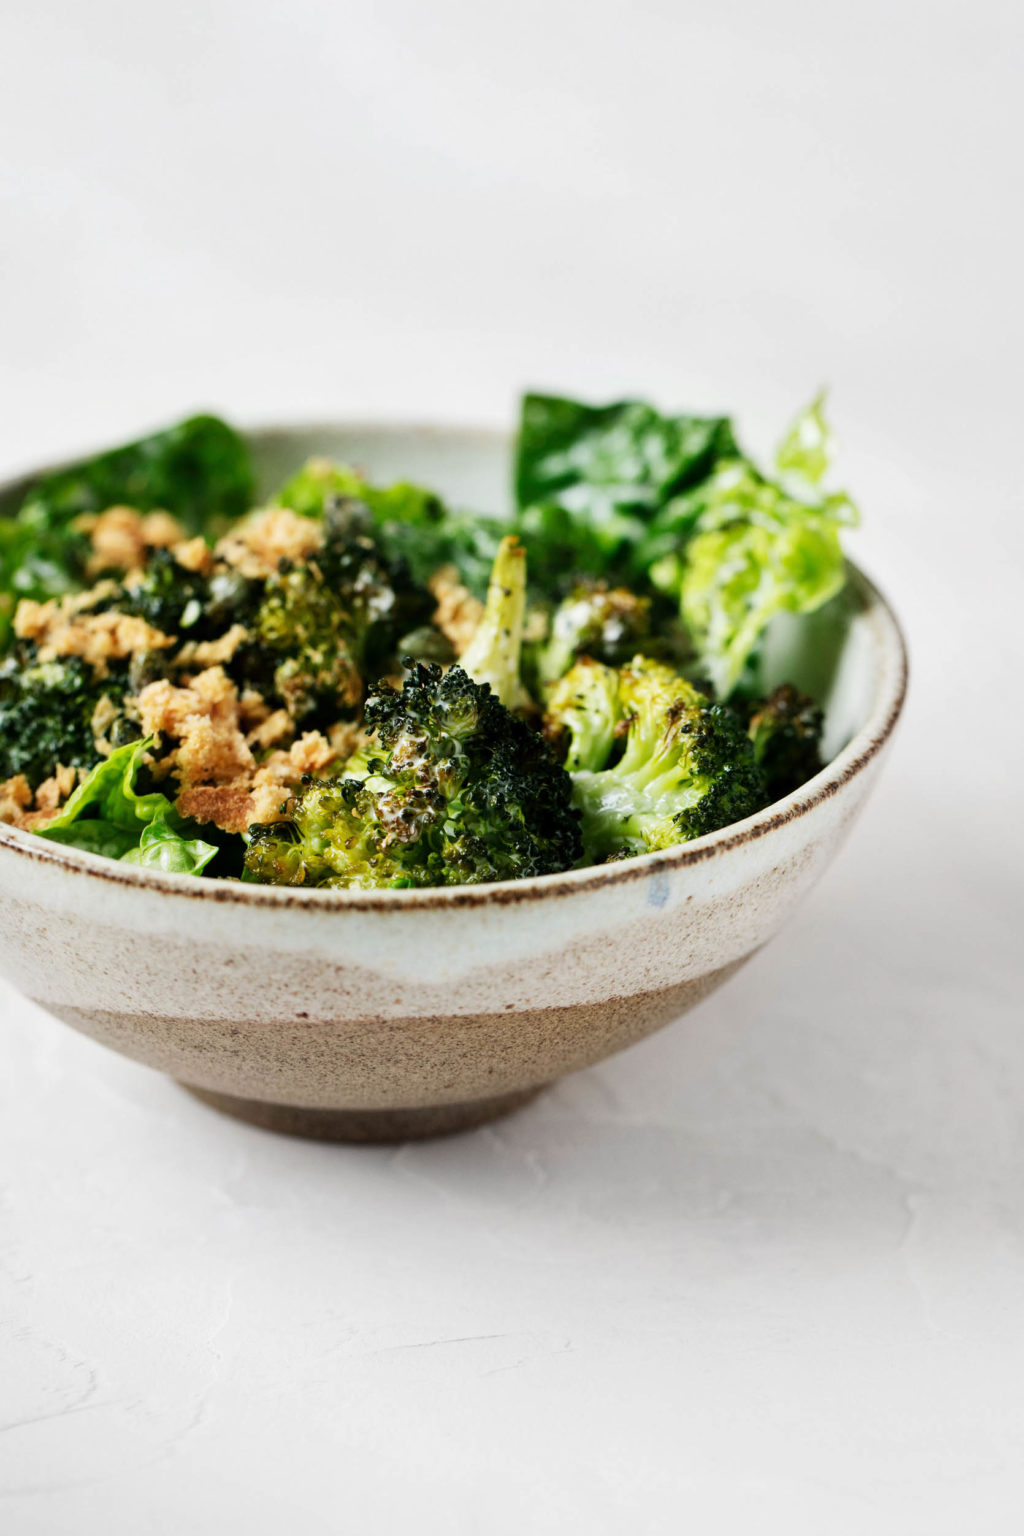 An angled, sideways image of a vegan Caesar salad, made with crispy broccoli, fresh bread crumbs, and vegan parmesan.